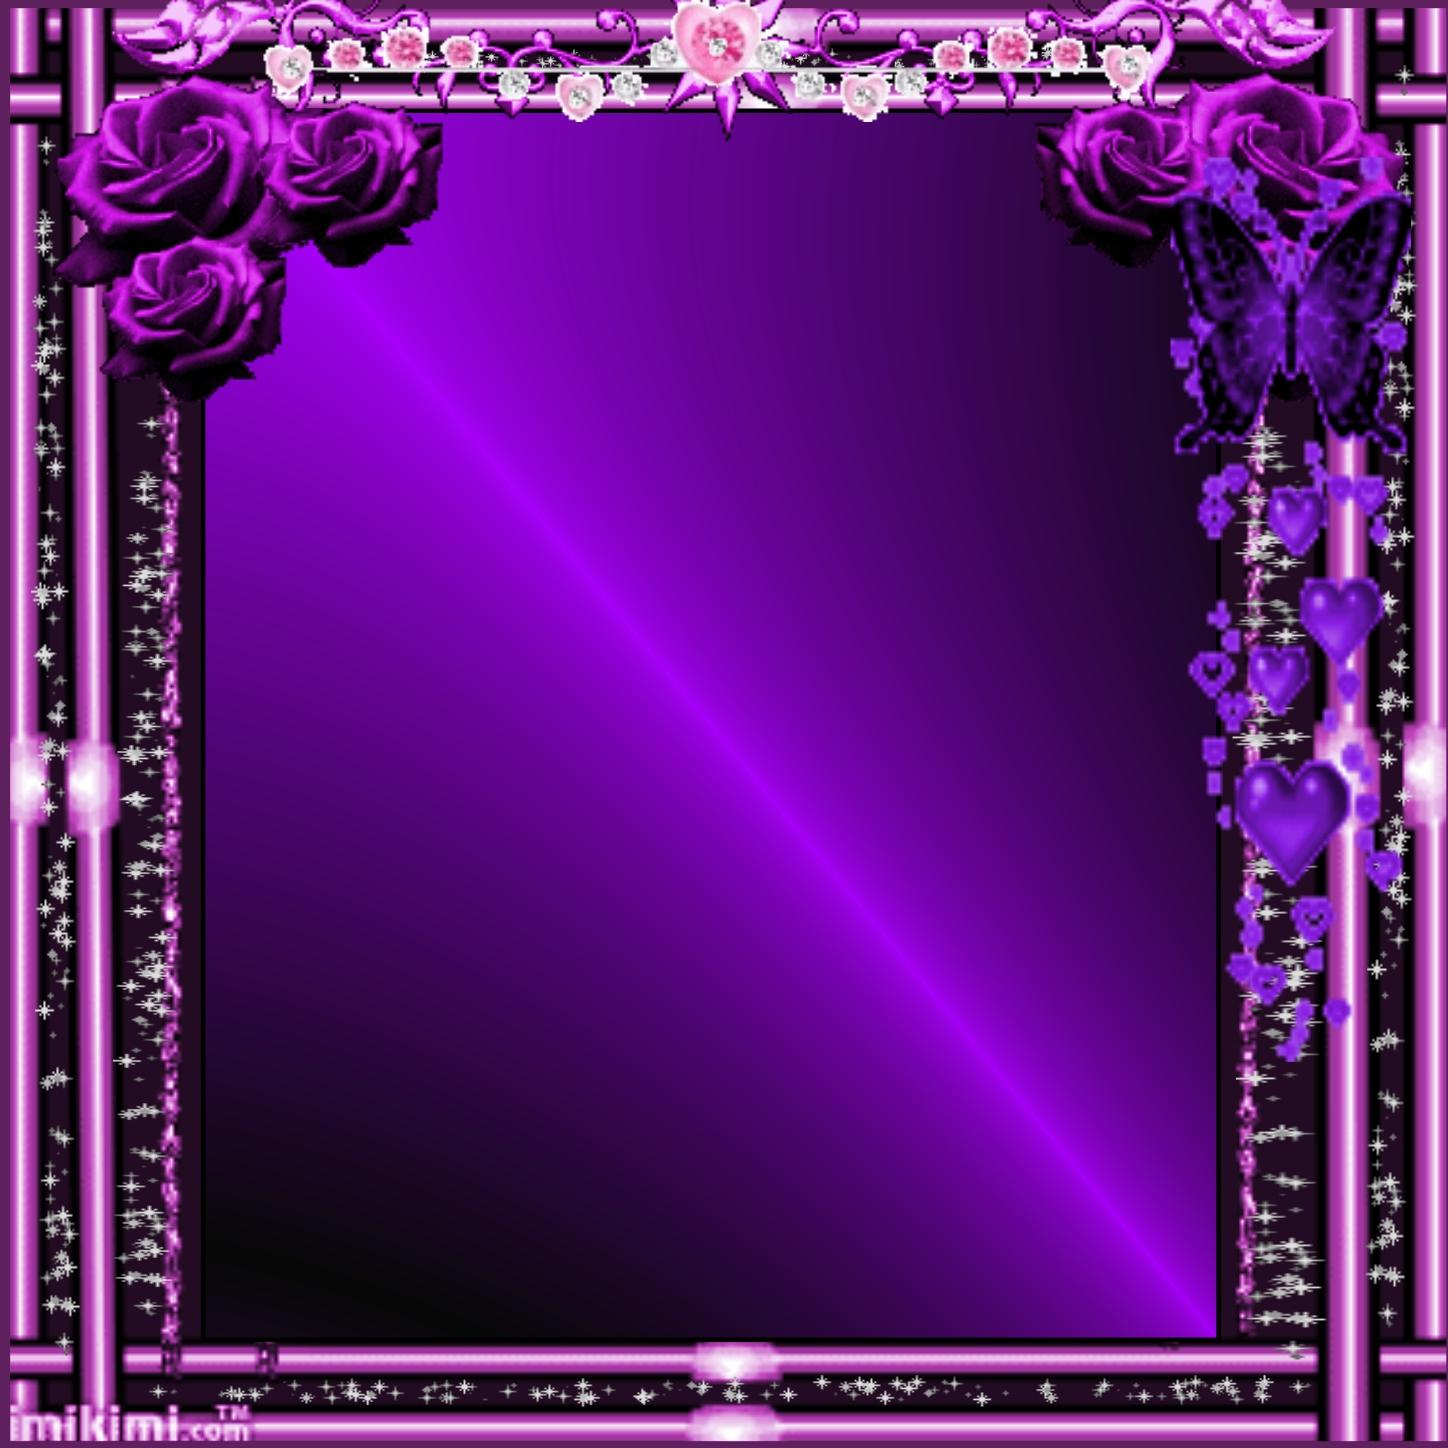 Imikimi Zo - Picture Frames - 2007 - 2008 - Purple My Frame ...